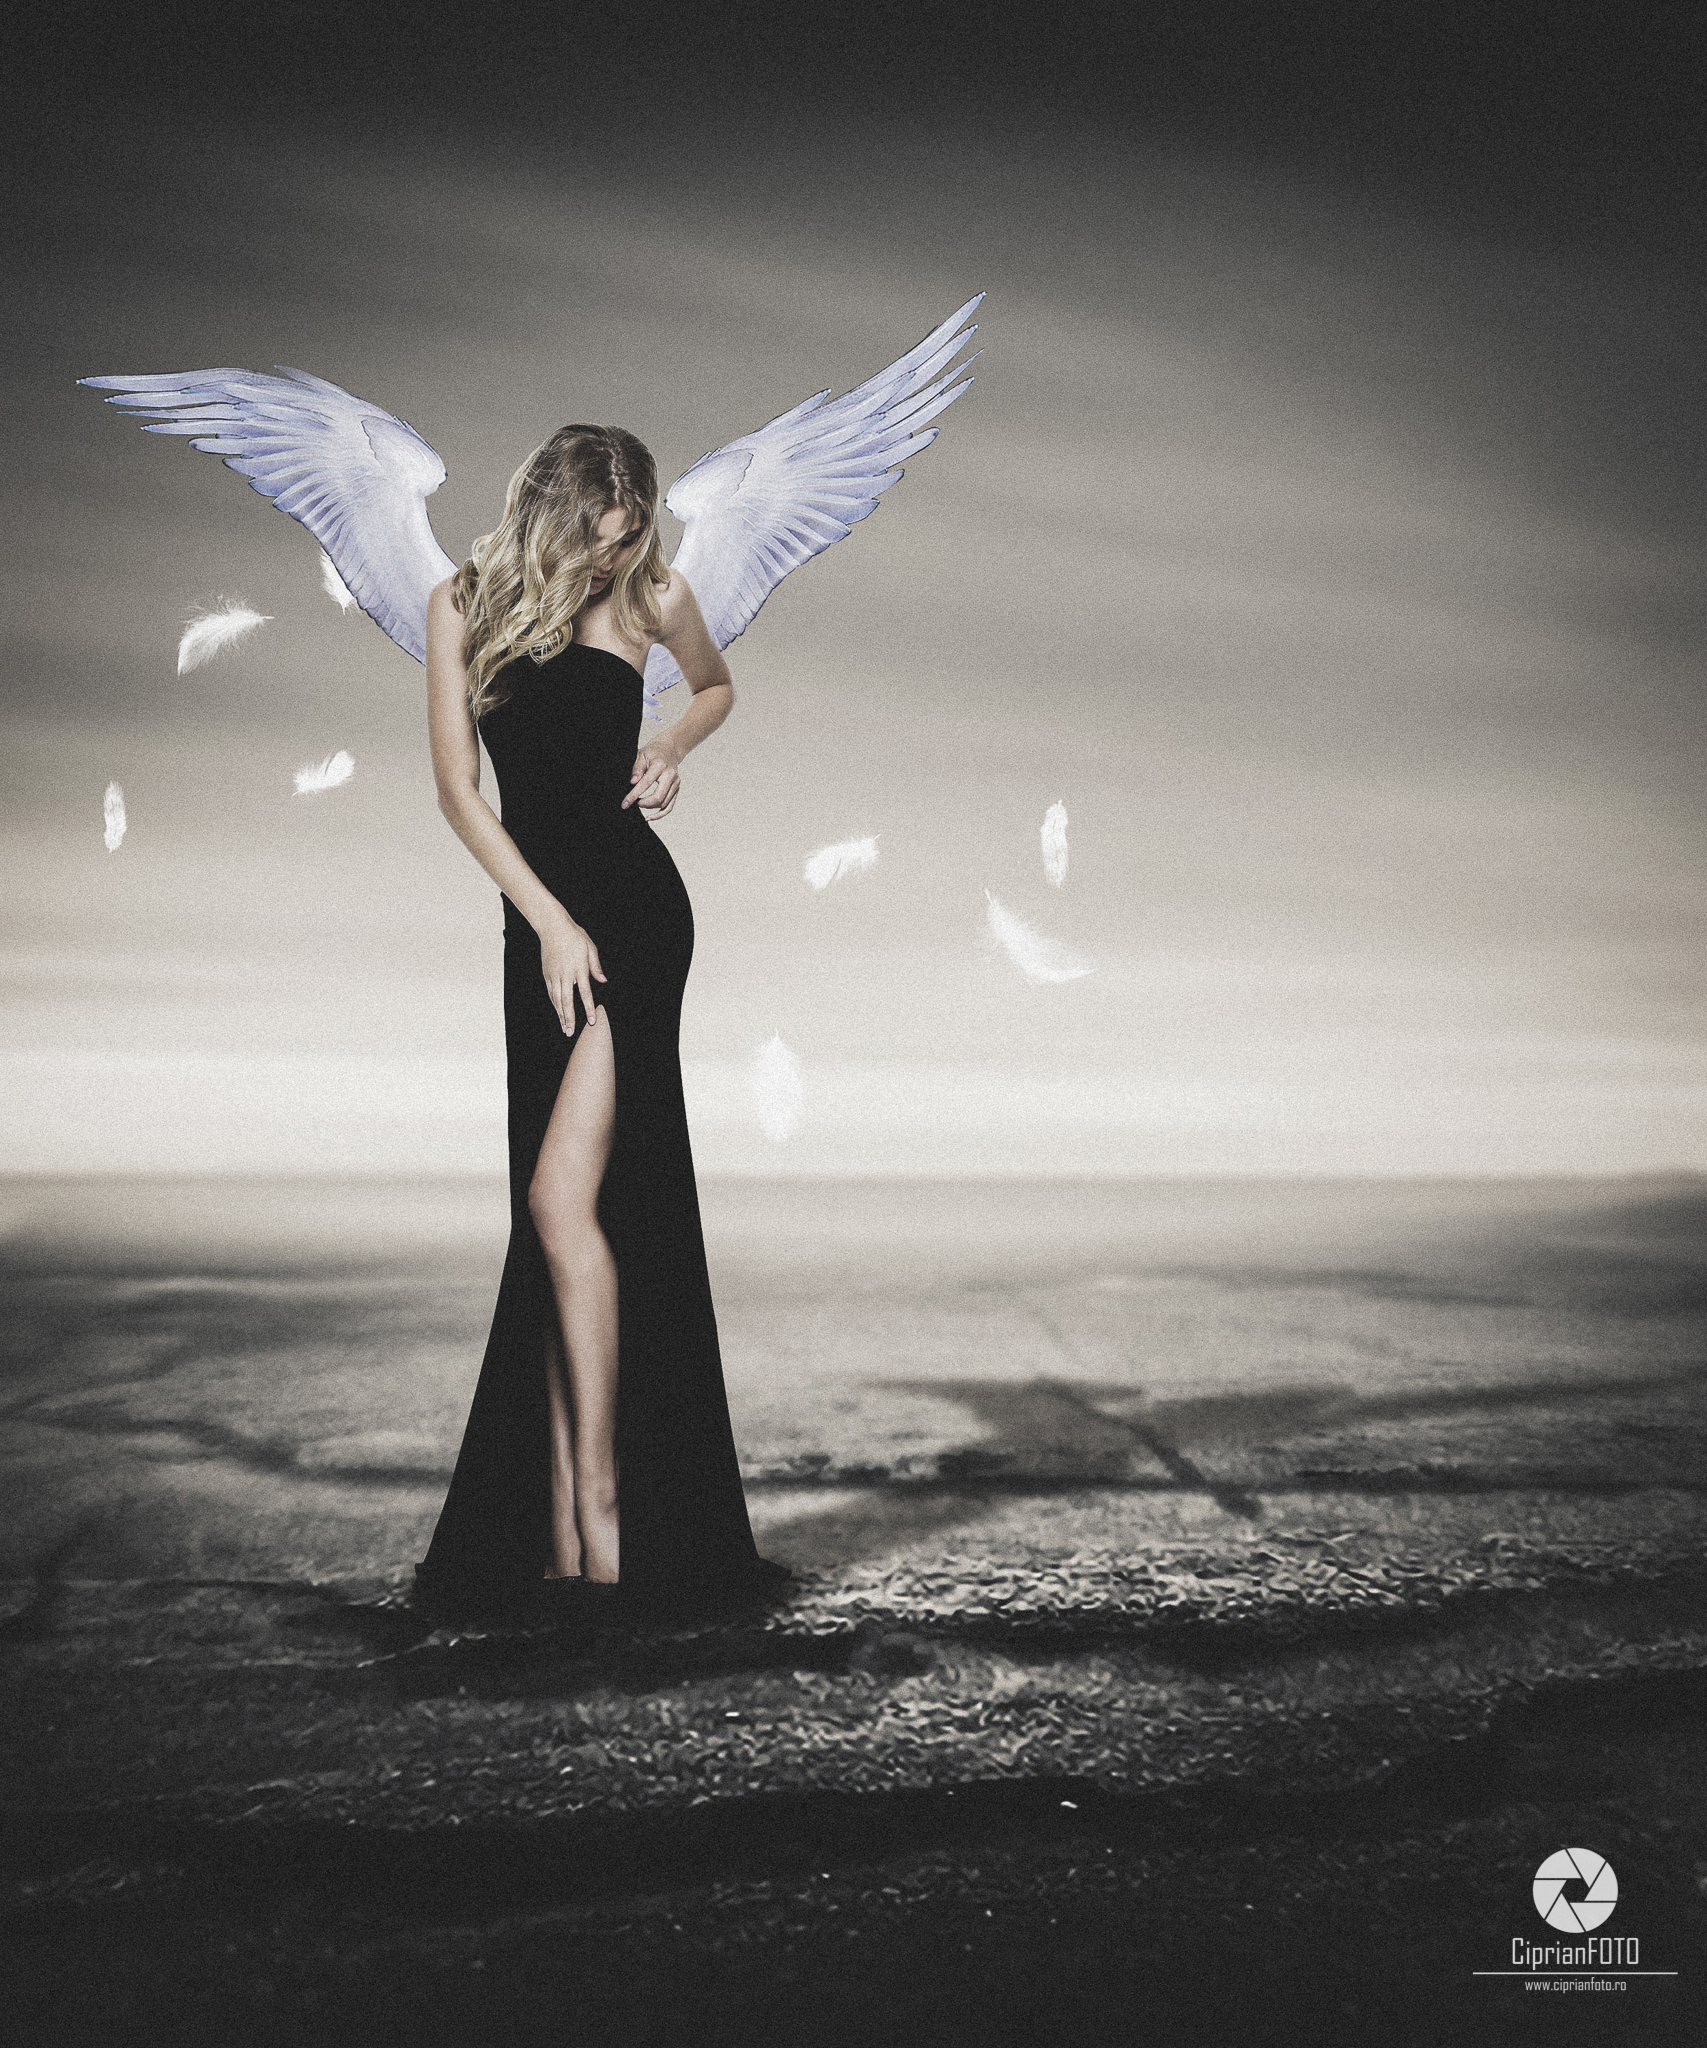 Woman With White Wings, Photoshop Manipulation Tutorial, CiprianFOTO